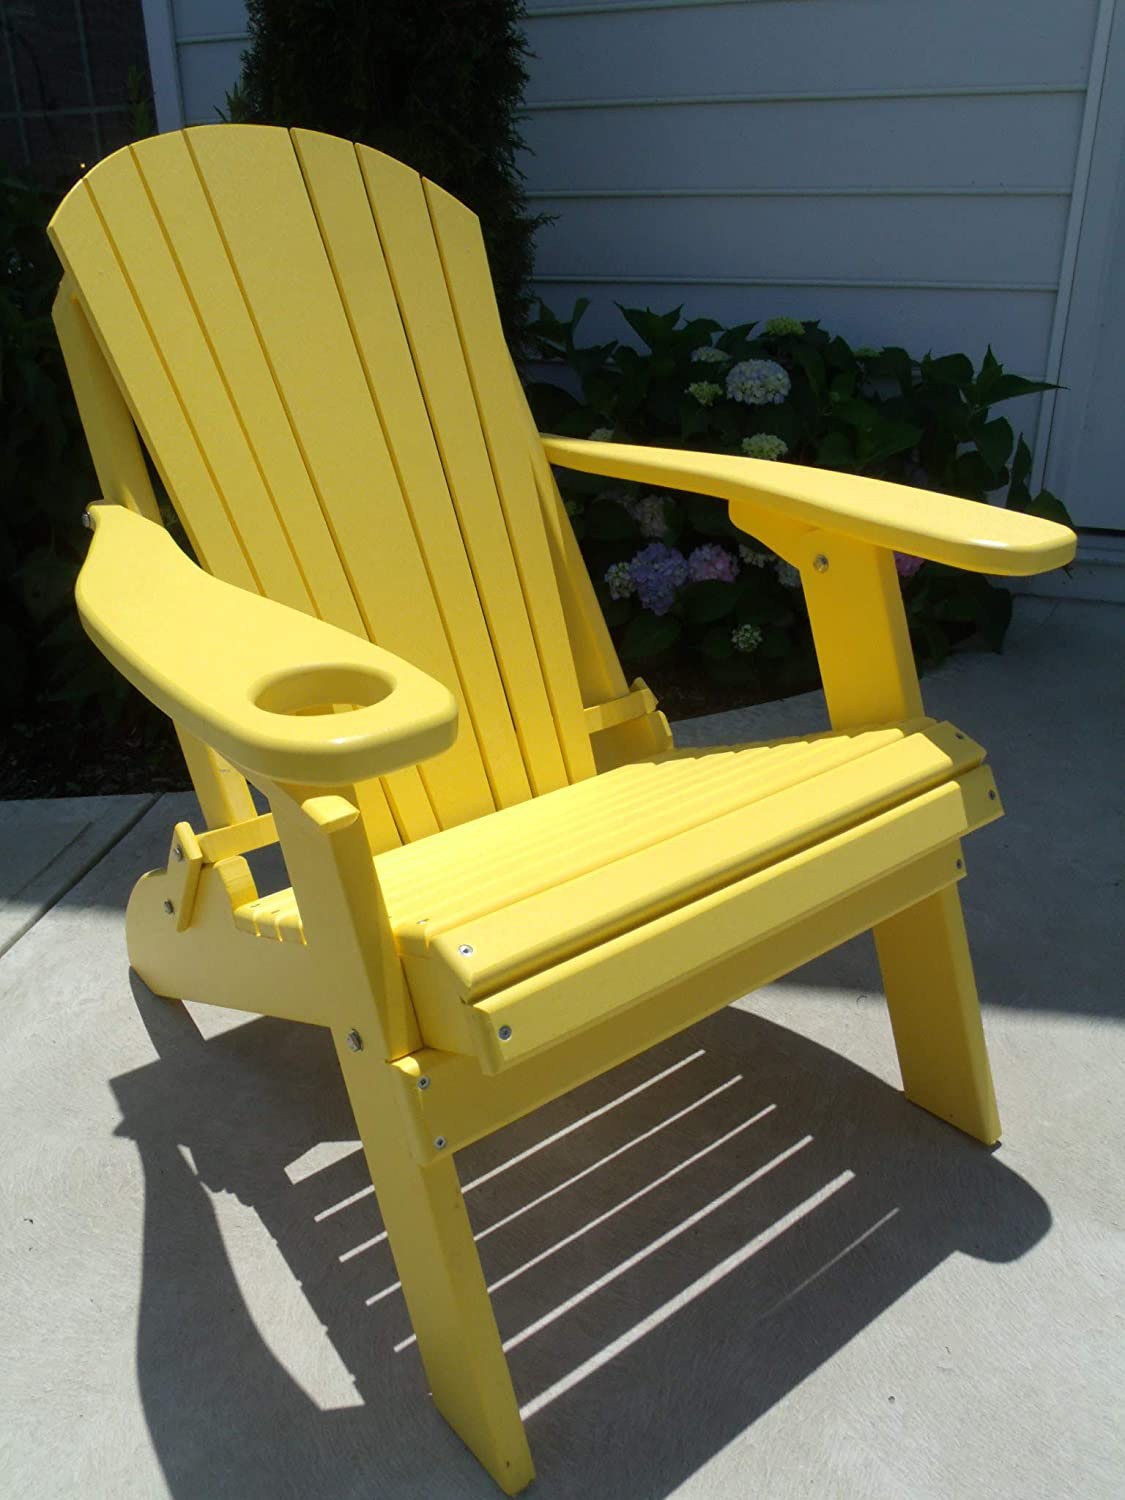 Furniture Barn USA Premium Folding Adirondack Chair w Cup Holder – Poly Lumber – Yellow